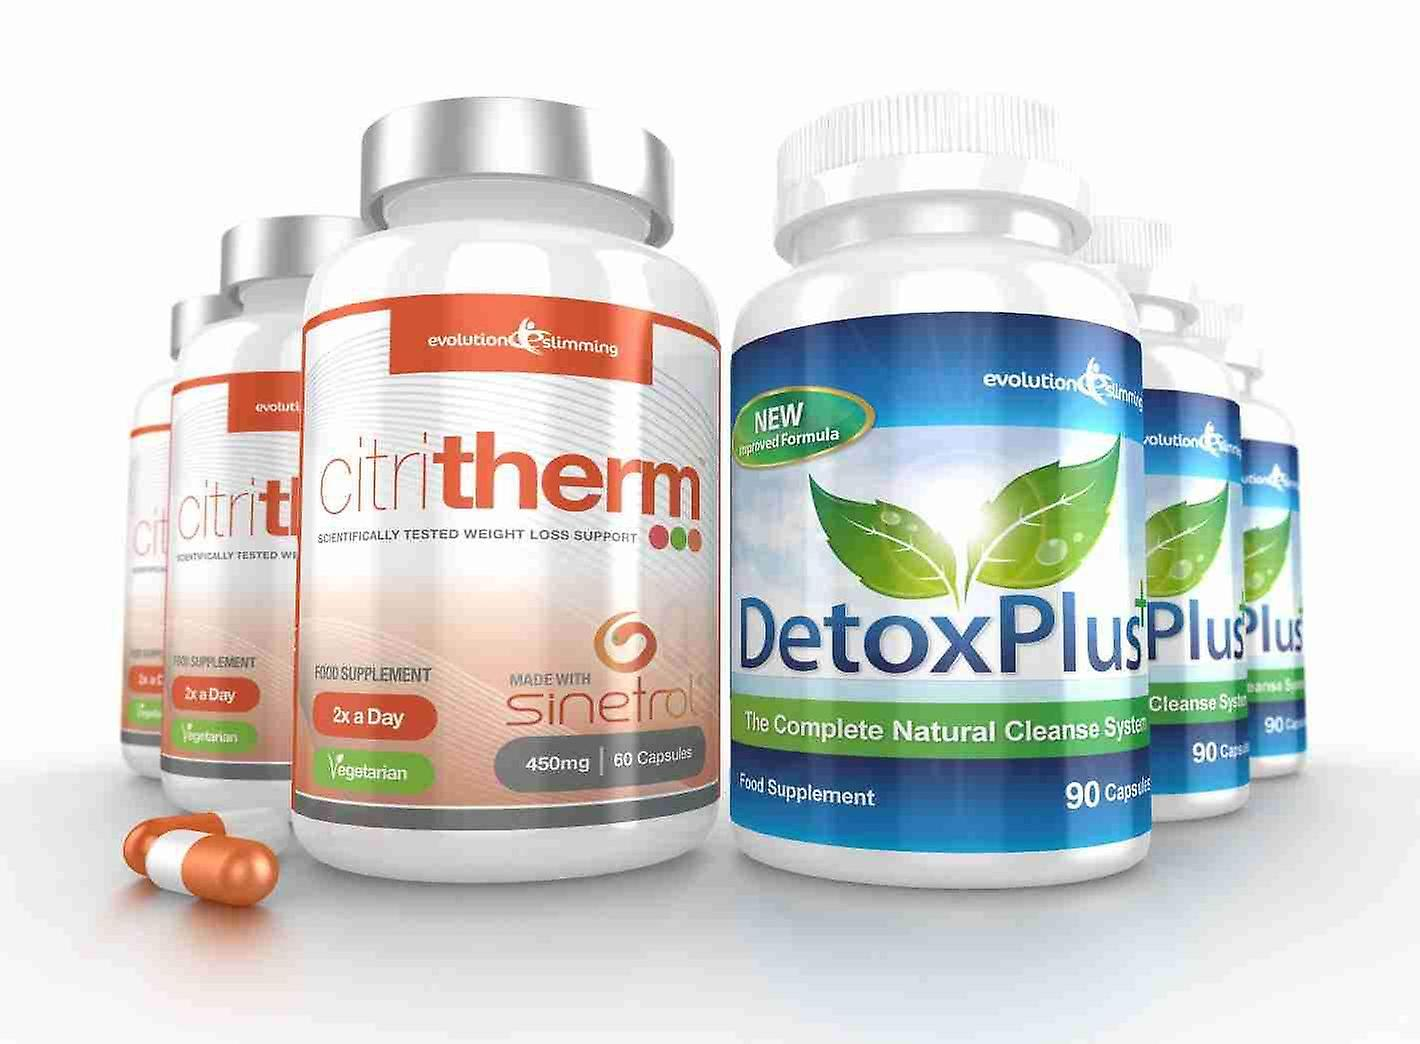 CitriTherm Fat Burner with DetoxPlus Combo - 3 Month Supply - Fat Burning and Colon Cleansing - Evolution Slimming